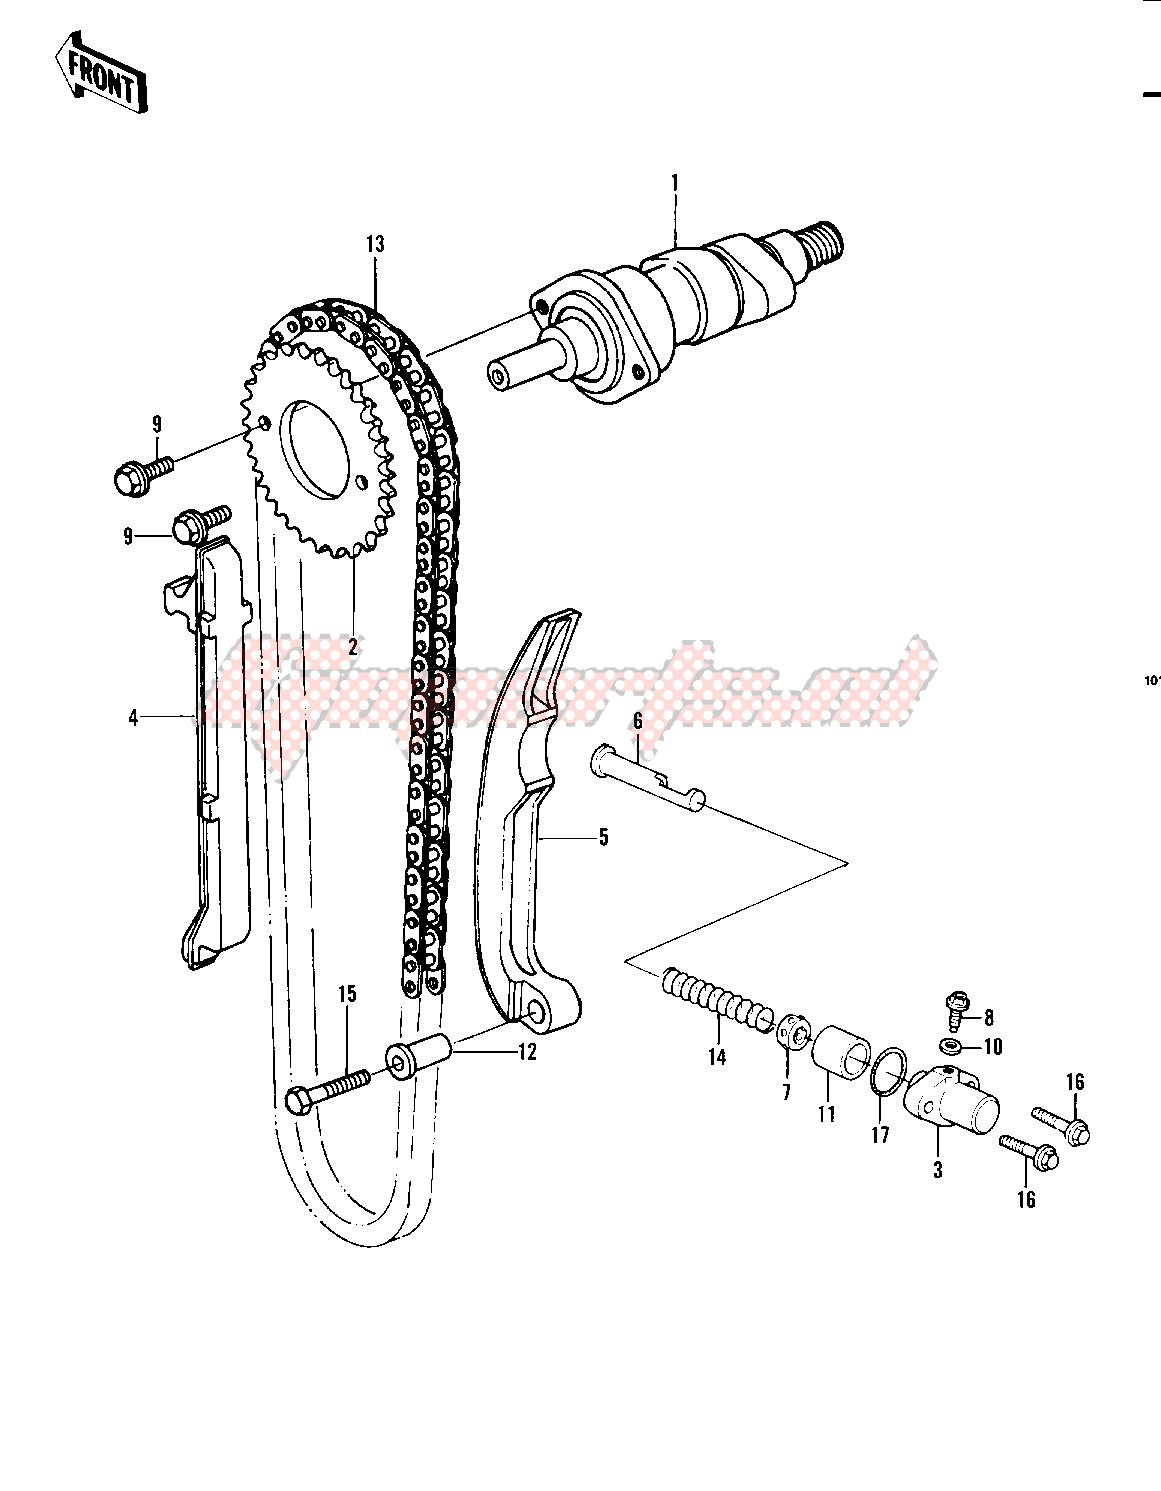 CAMSHAFT_CHAIN_TENSIONER -- 82 A1- - image